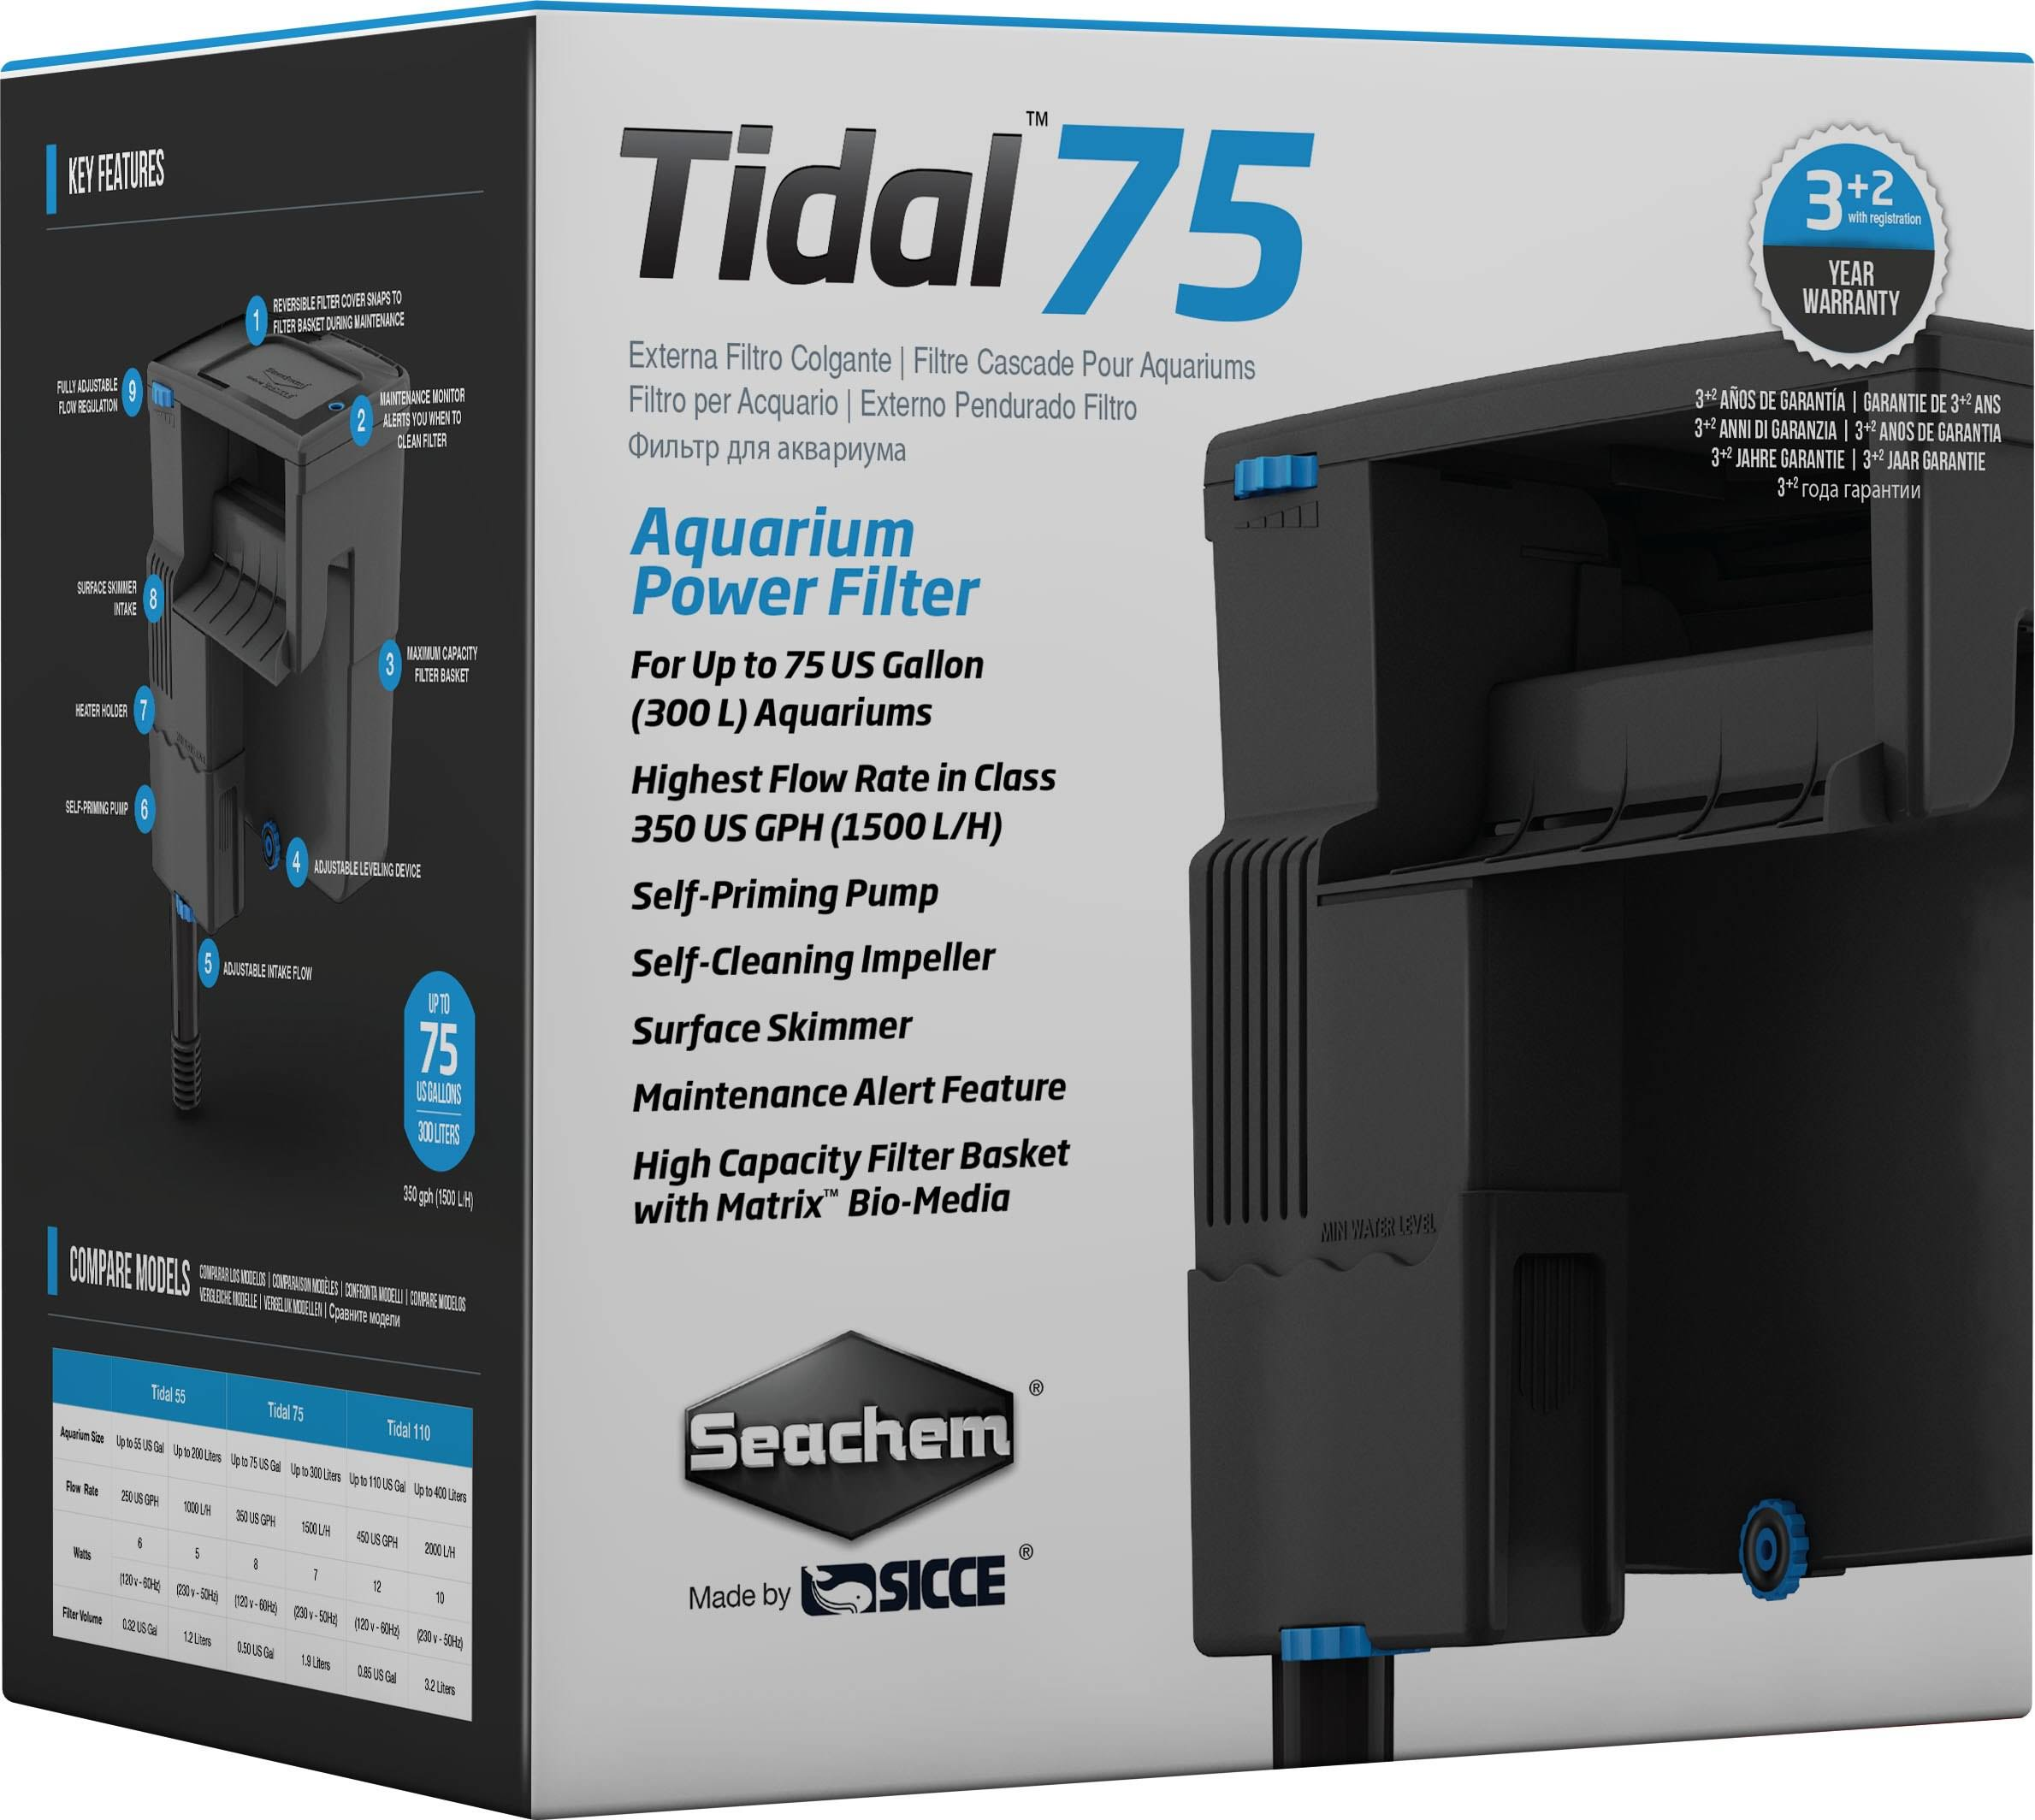 Seachem Tidal 75 Aquarium Power Filter - 75gal Tank